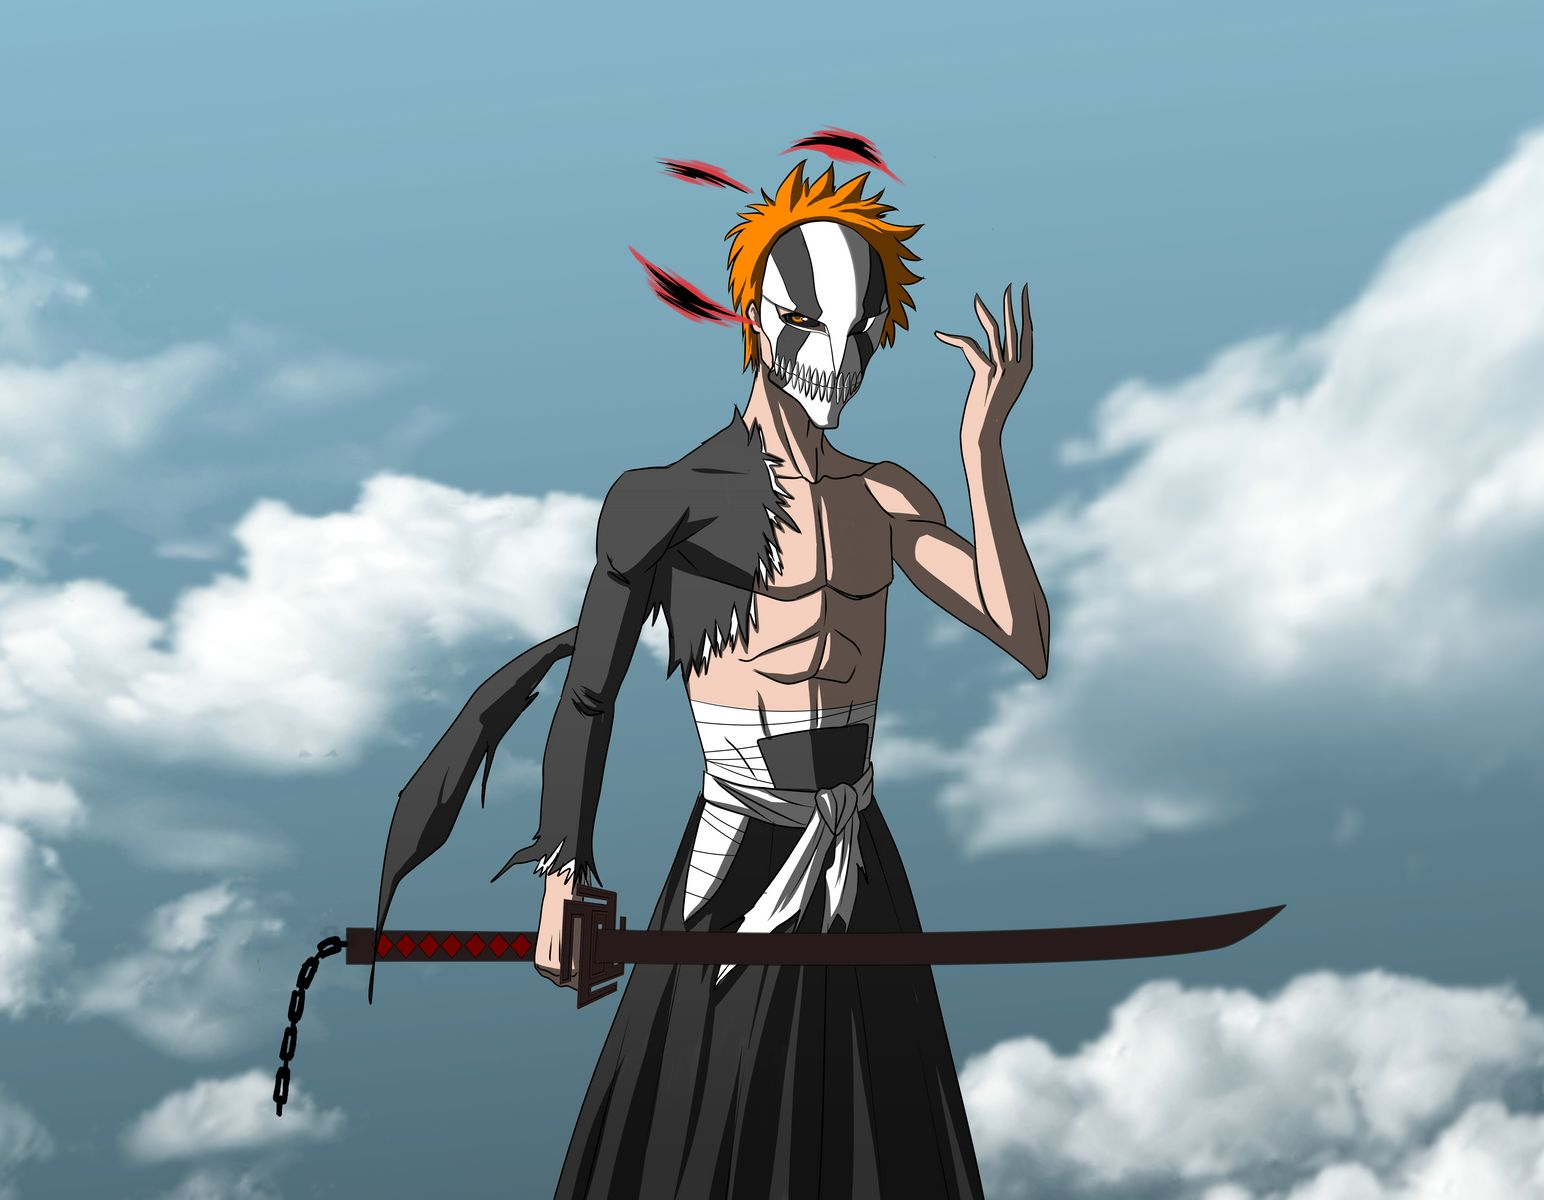 Ichigo hollow mask bankai